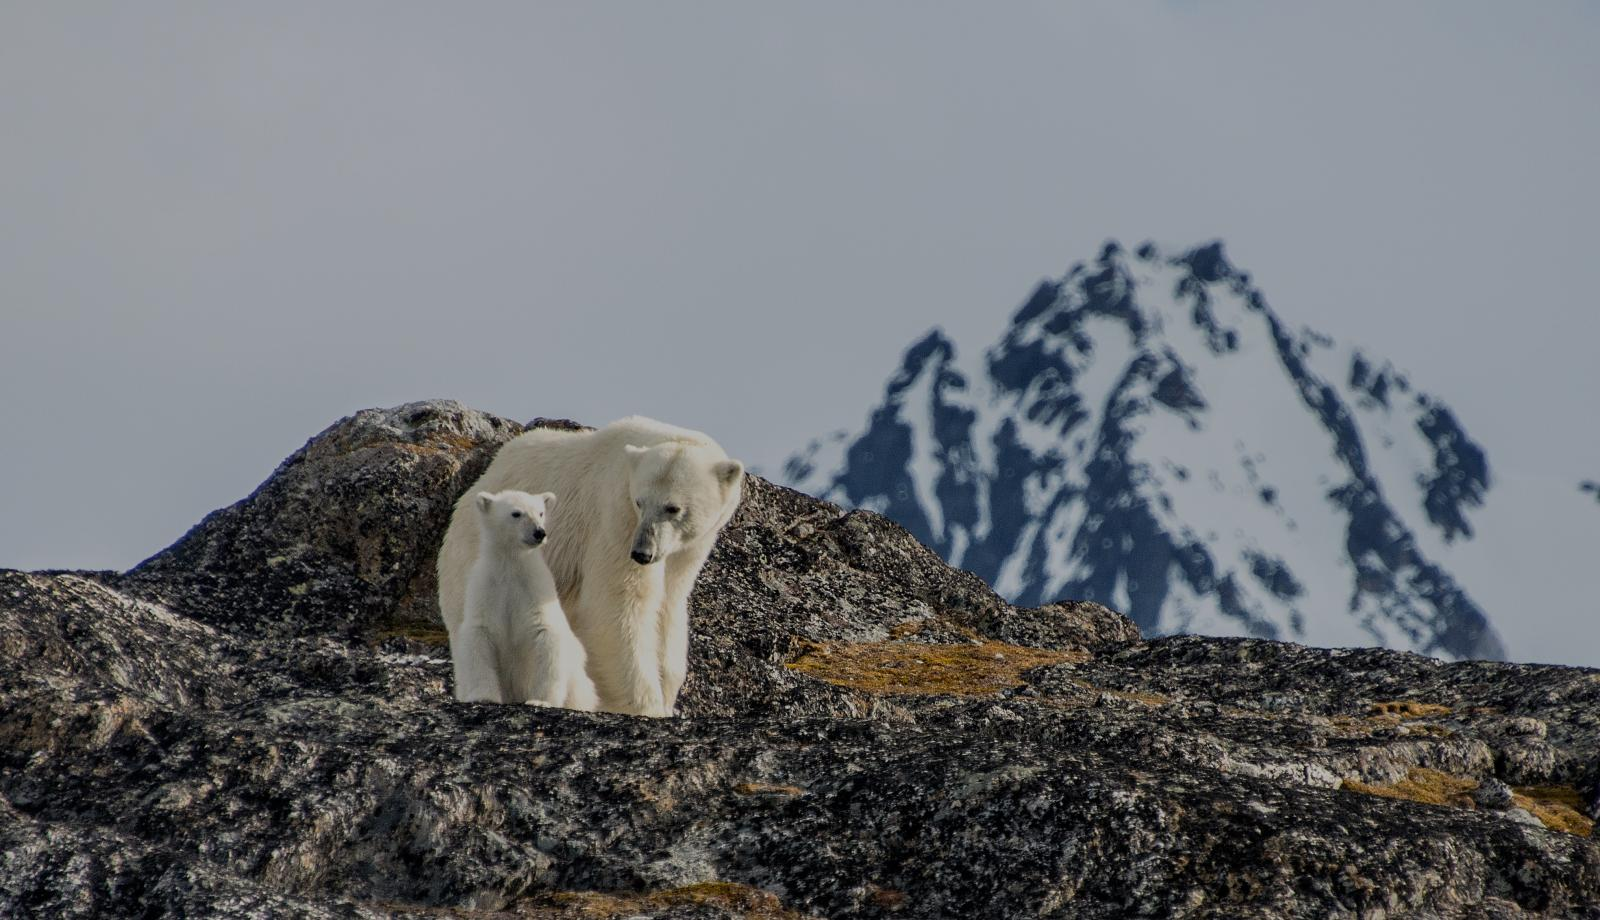 Polar bears, Svalbard Islands, Norway